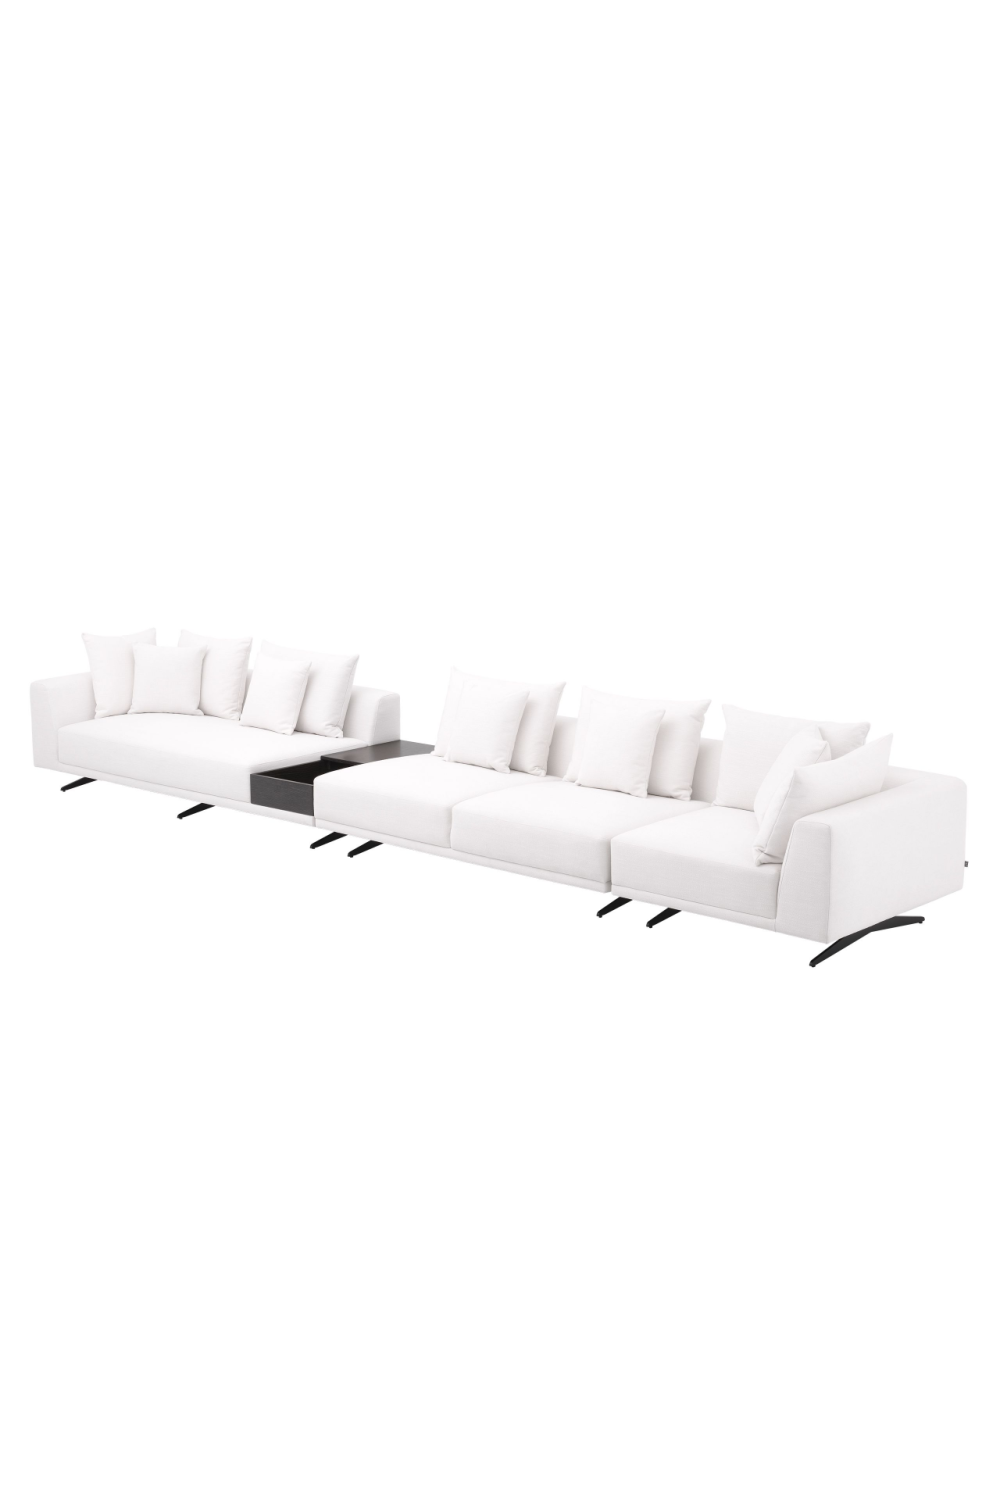 Avalon White Sectional Sofa | Eichholtz Endless | #1 Eichholtz